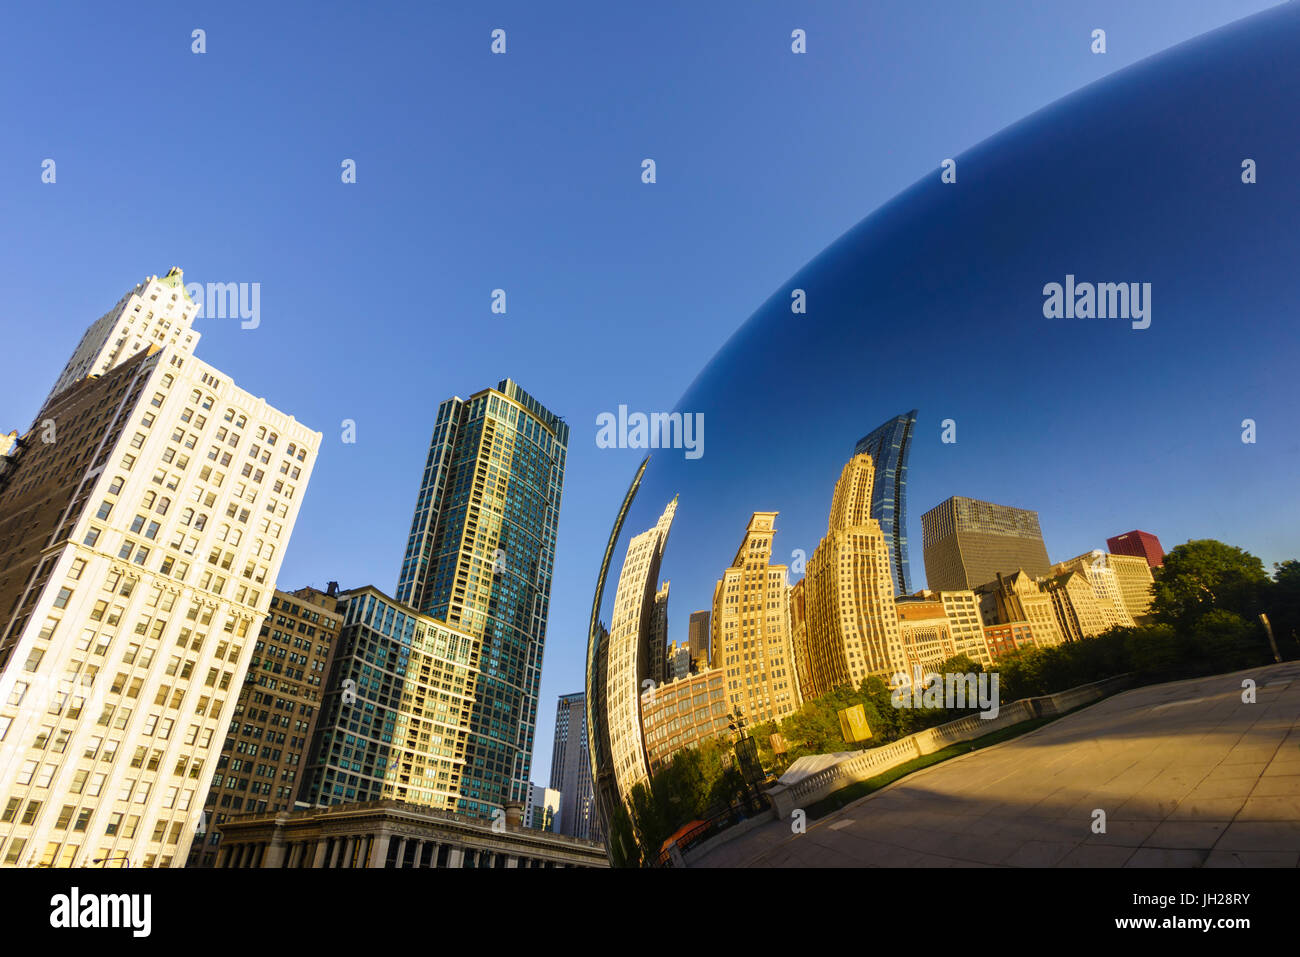 Millennium Park and the Cloud Gate sculpture, Chicago, Illinois, United States of America, North America - Stock Image